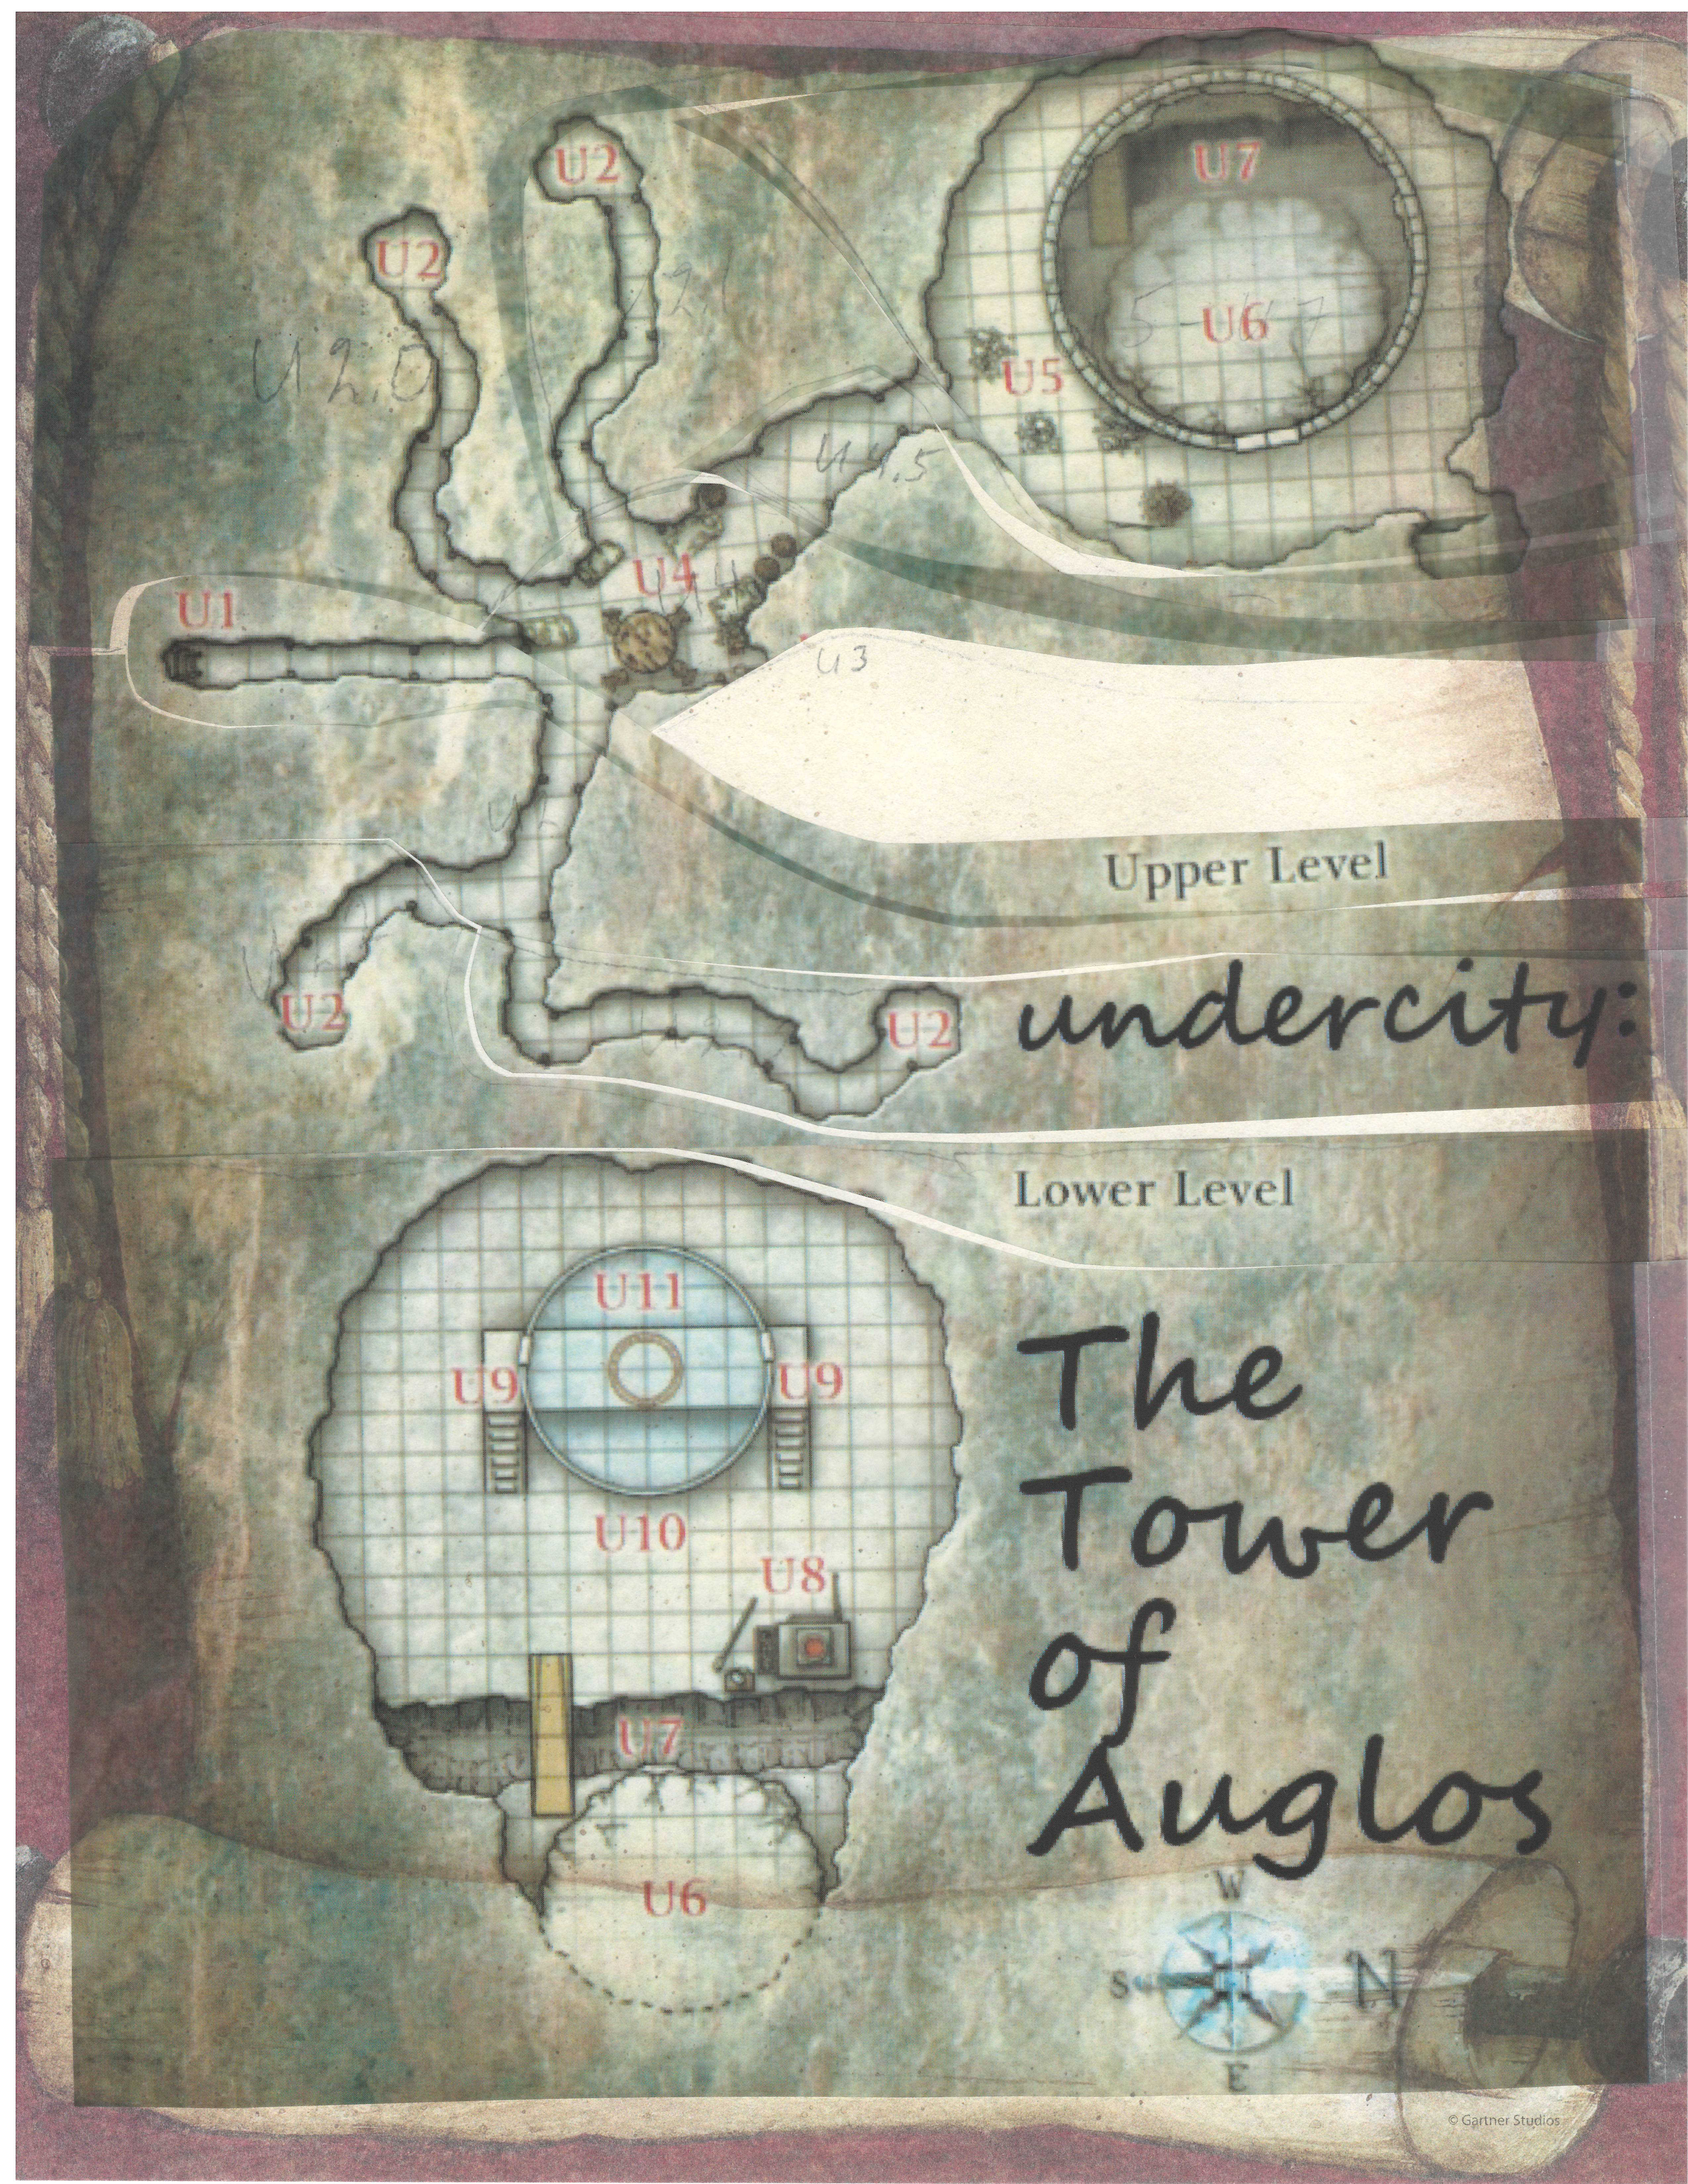 Tower_of_Auglos.JPG